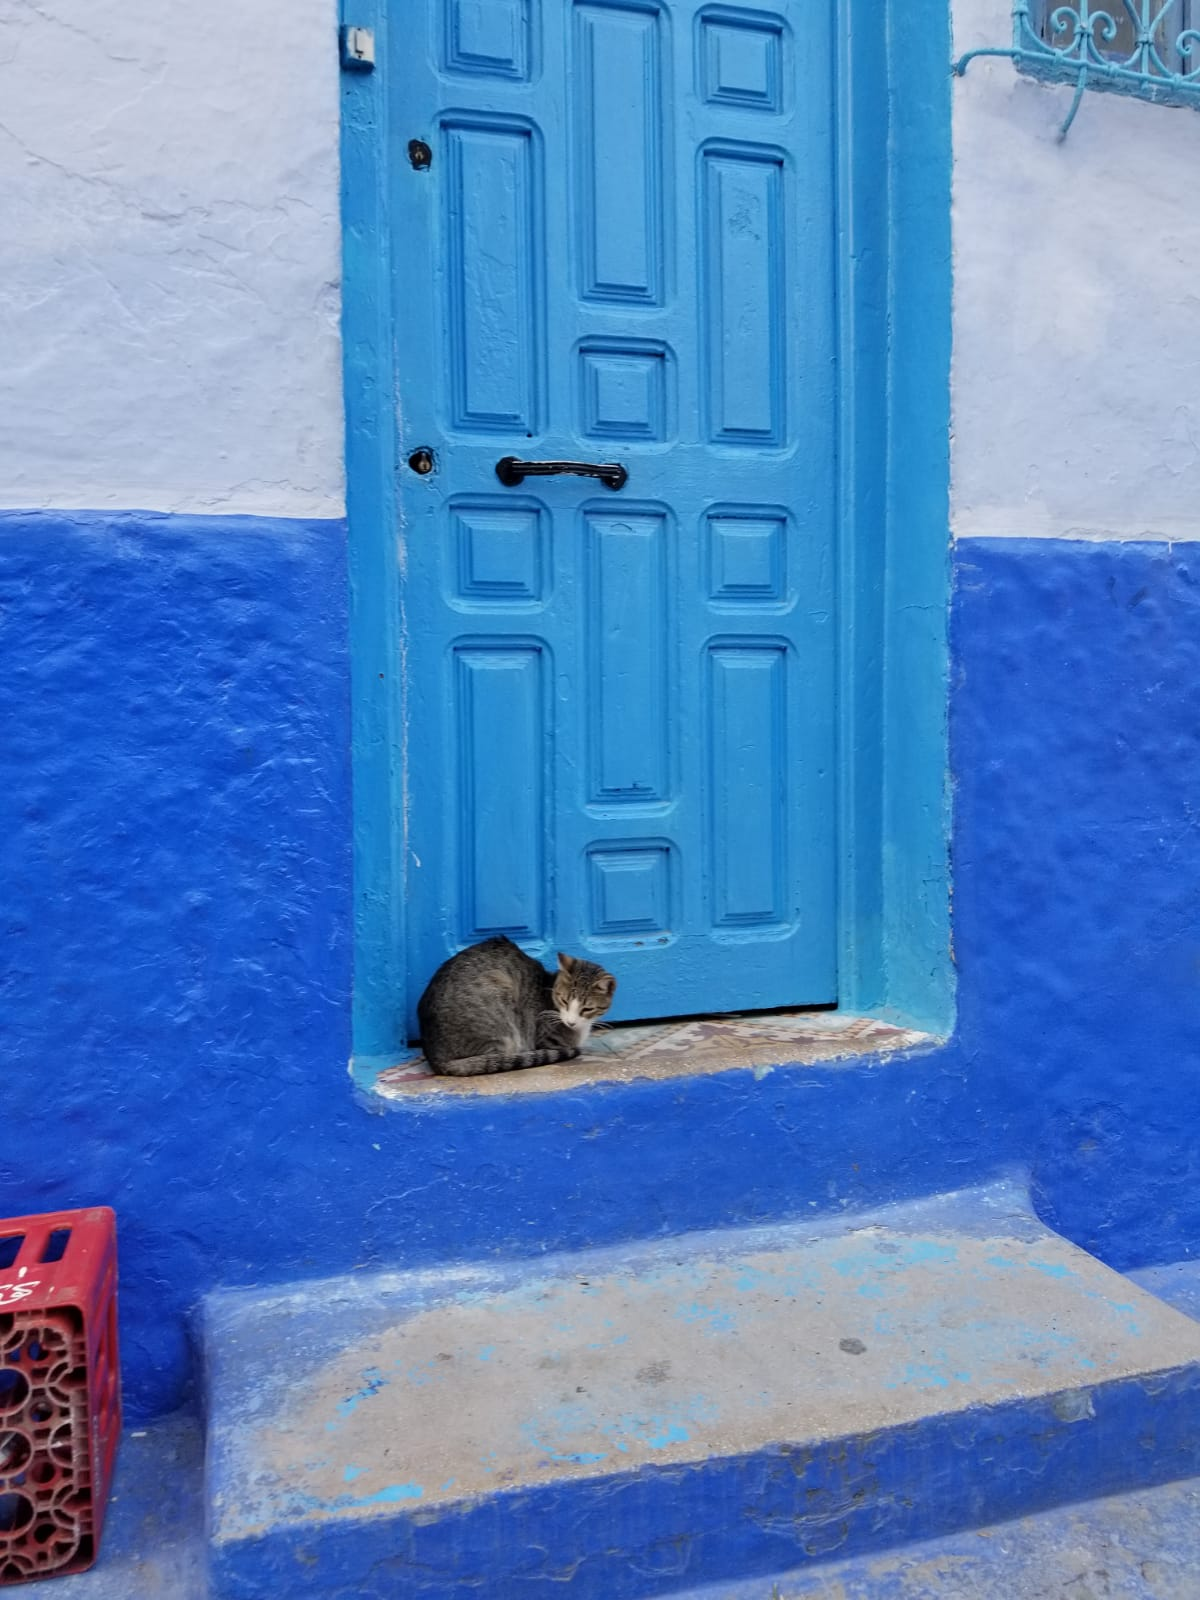 There are literally hundreds of cat pictures in Morocco starring kitties and doors… There isn't a 'but' here, they're literally all amazing and I couldn't begin to pick which ones were better than others. What does Morocco have to offer? Cats and doors!! Photo credit: Fisher, 2019